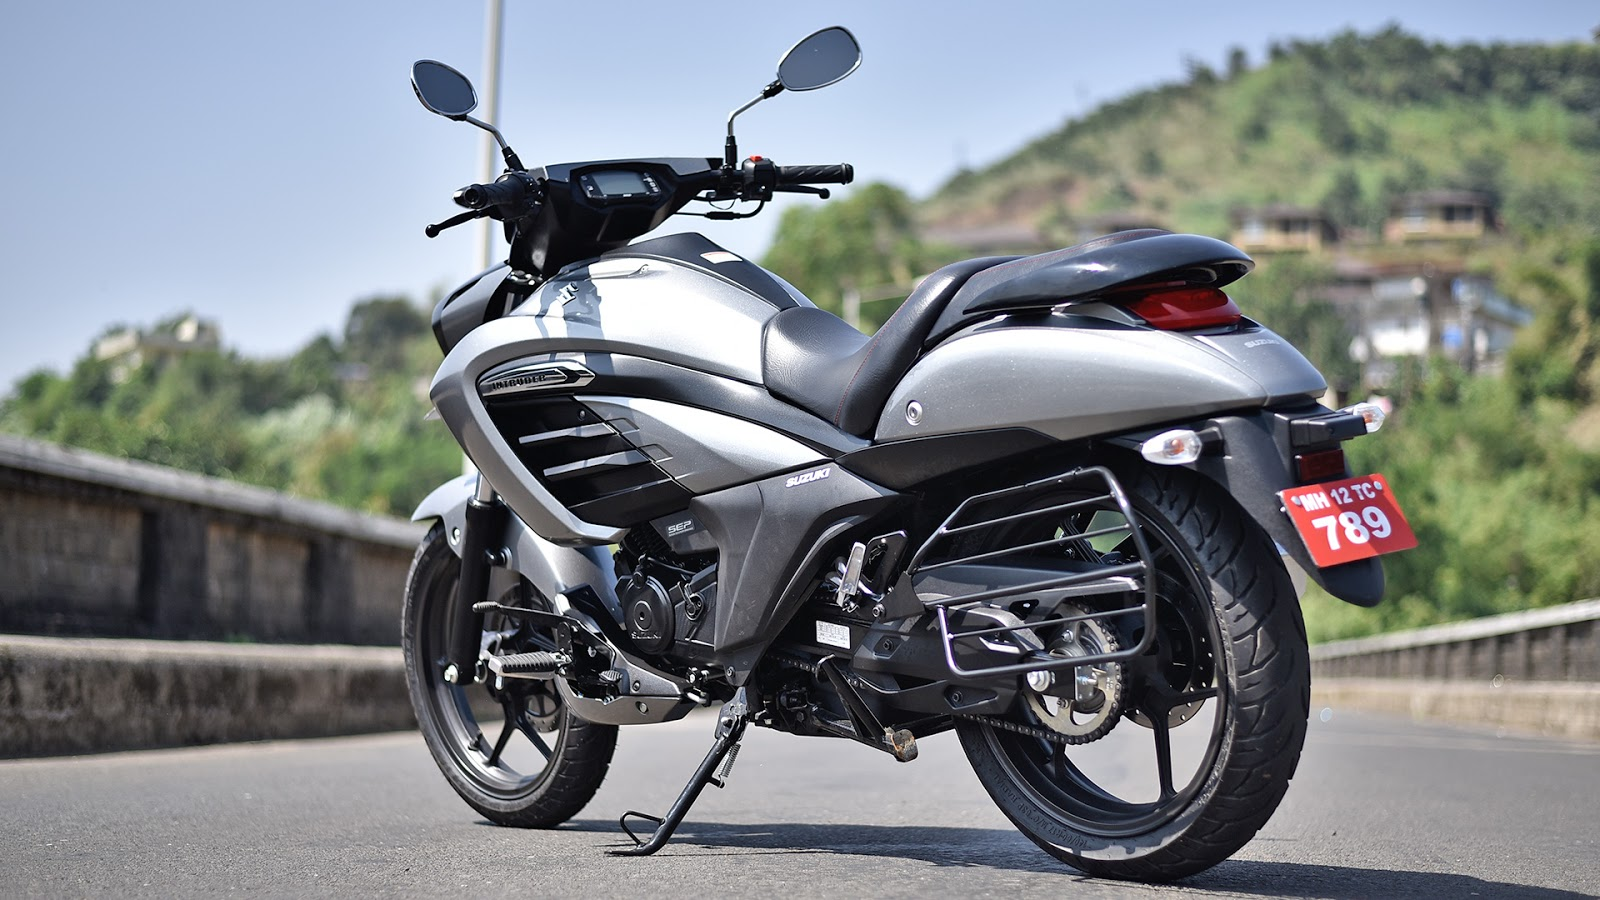 new suzuki intruder 150 hd wallpapers | hd pictures collection - all